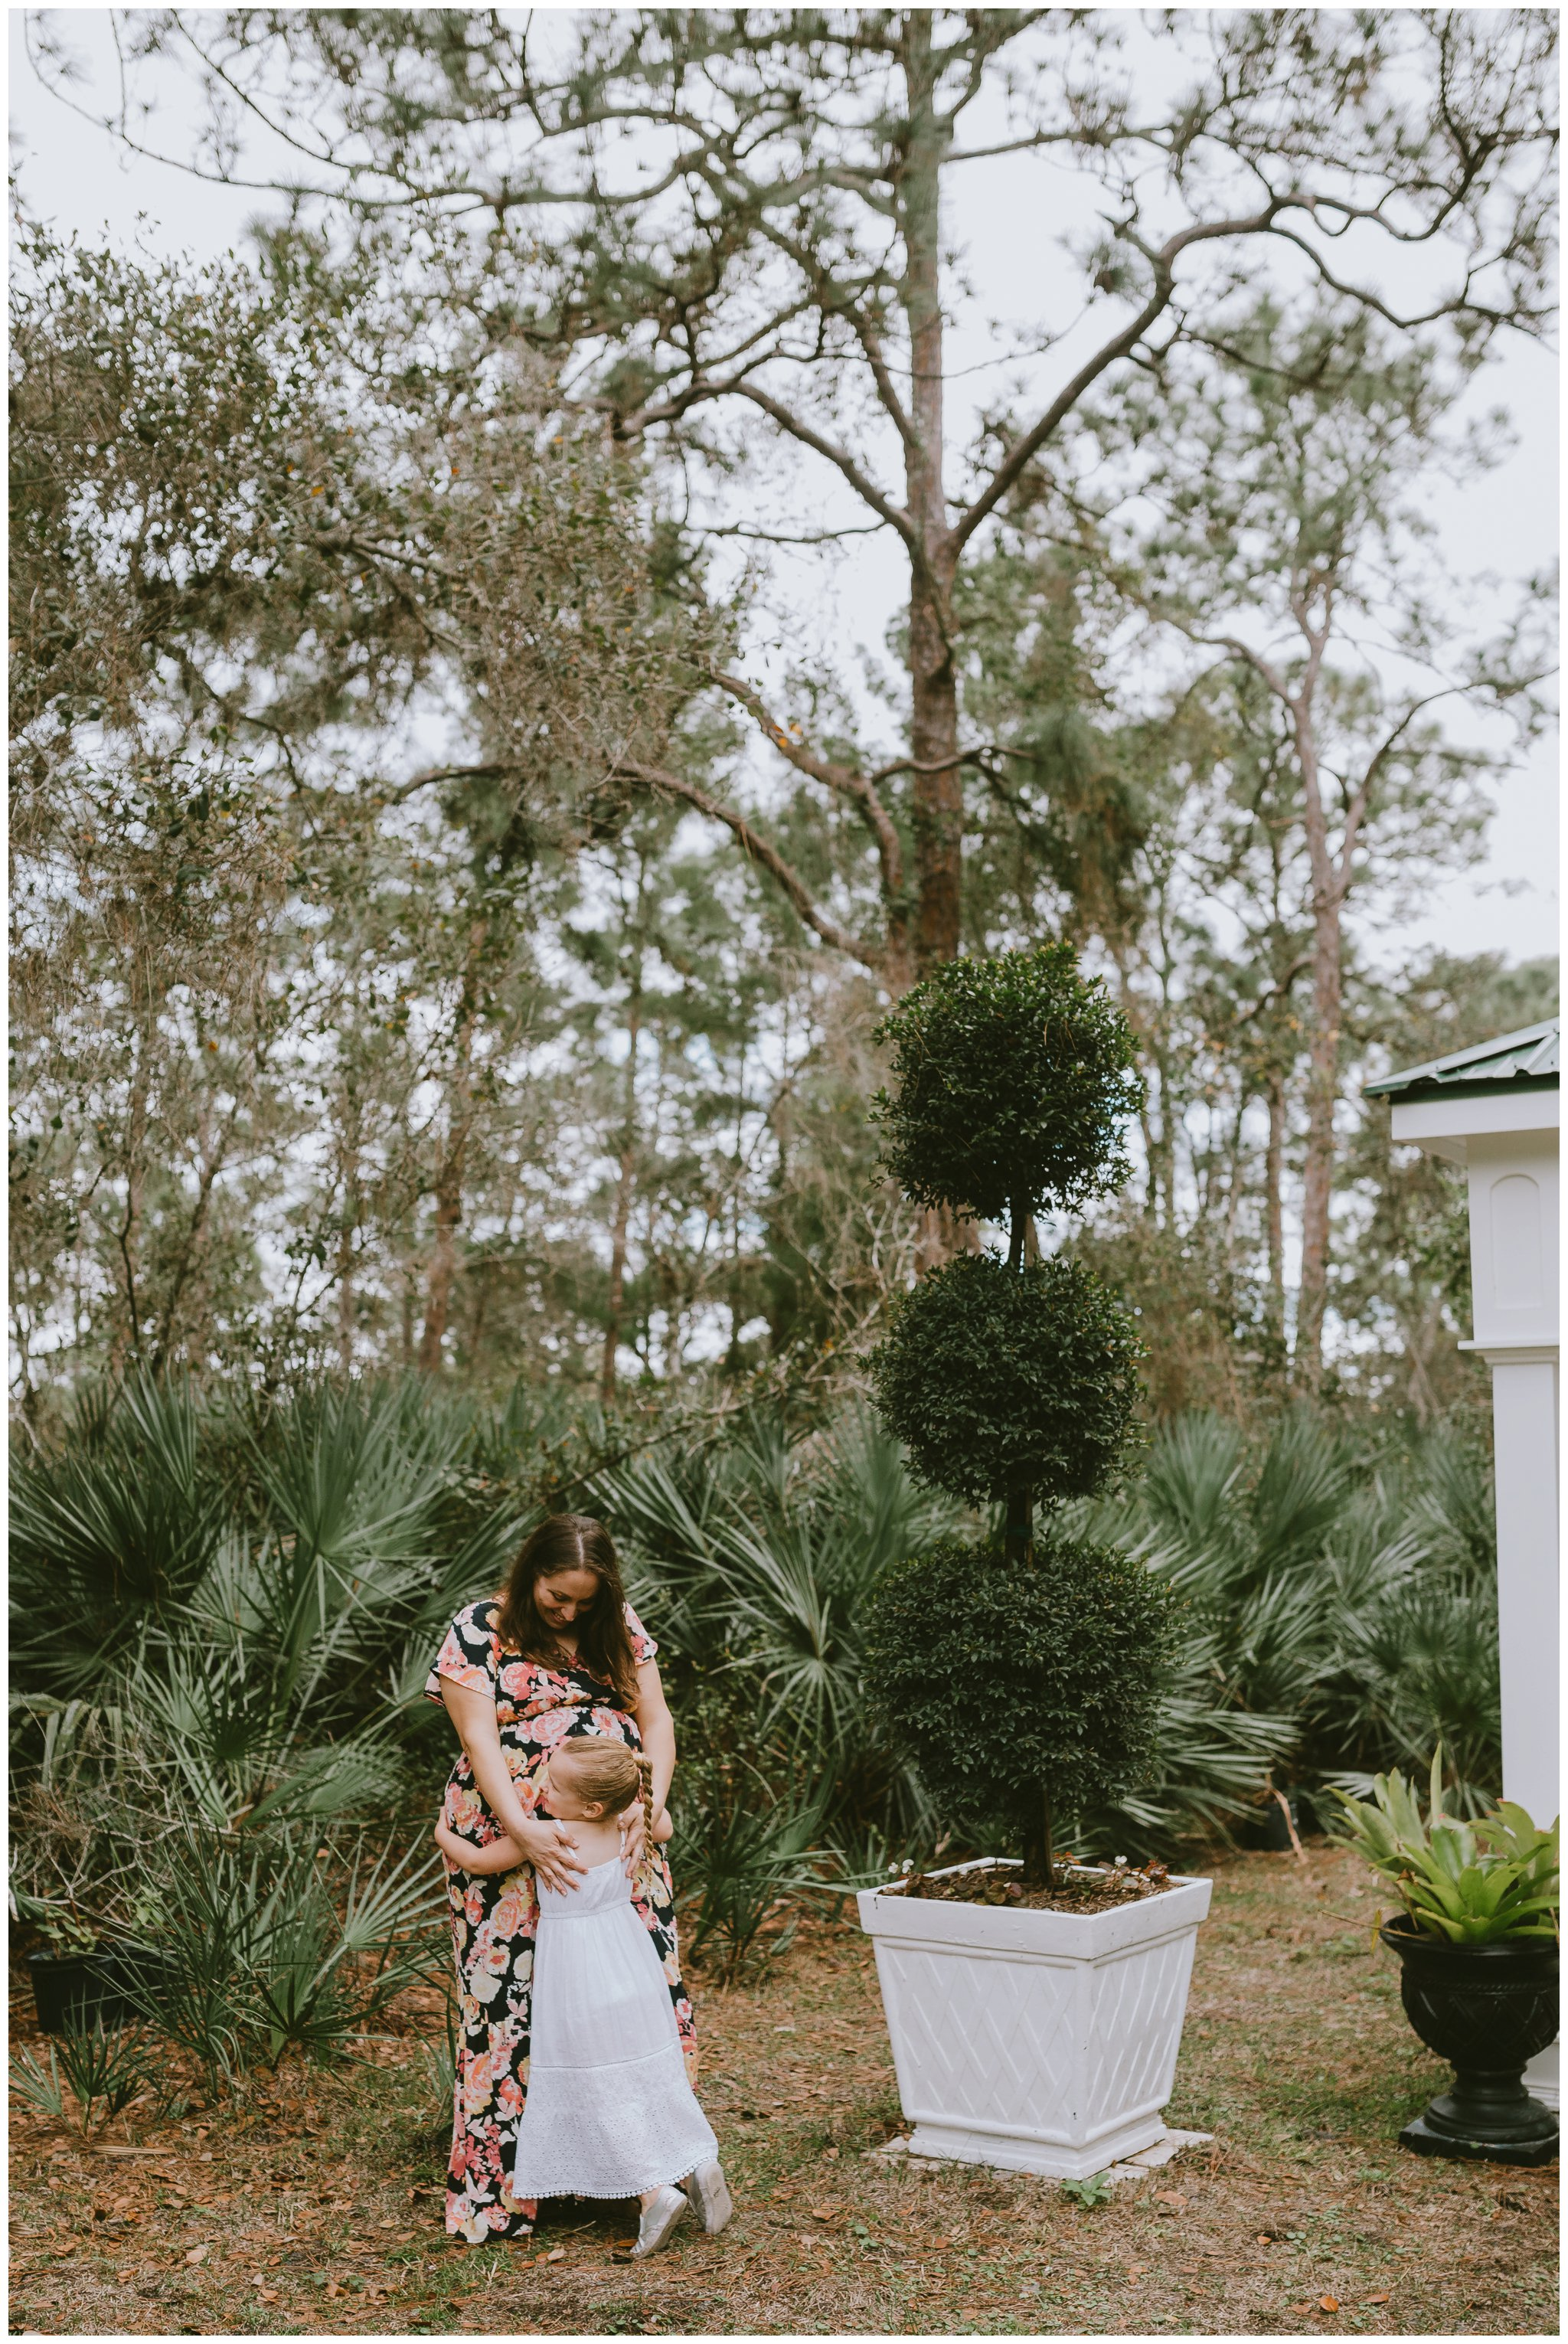 Kimberly Smith Photography| Port St Lucie Botanical Gardens| Maternity Photos| Jupiter Florida Photographer | Stuart Fl photographer_0197.jpg